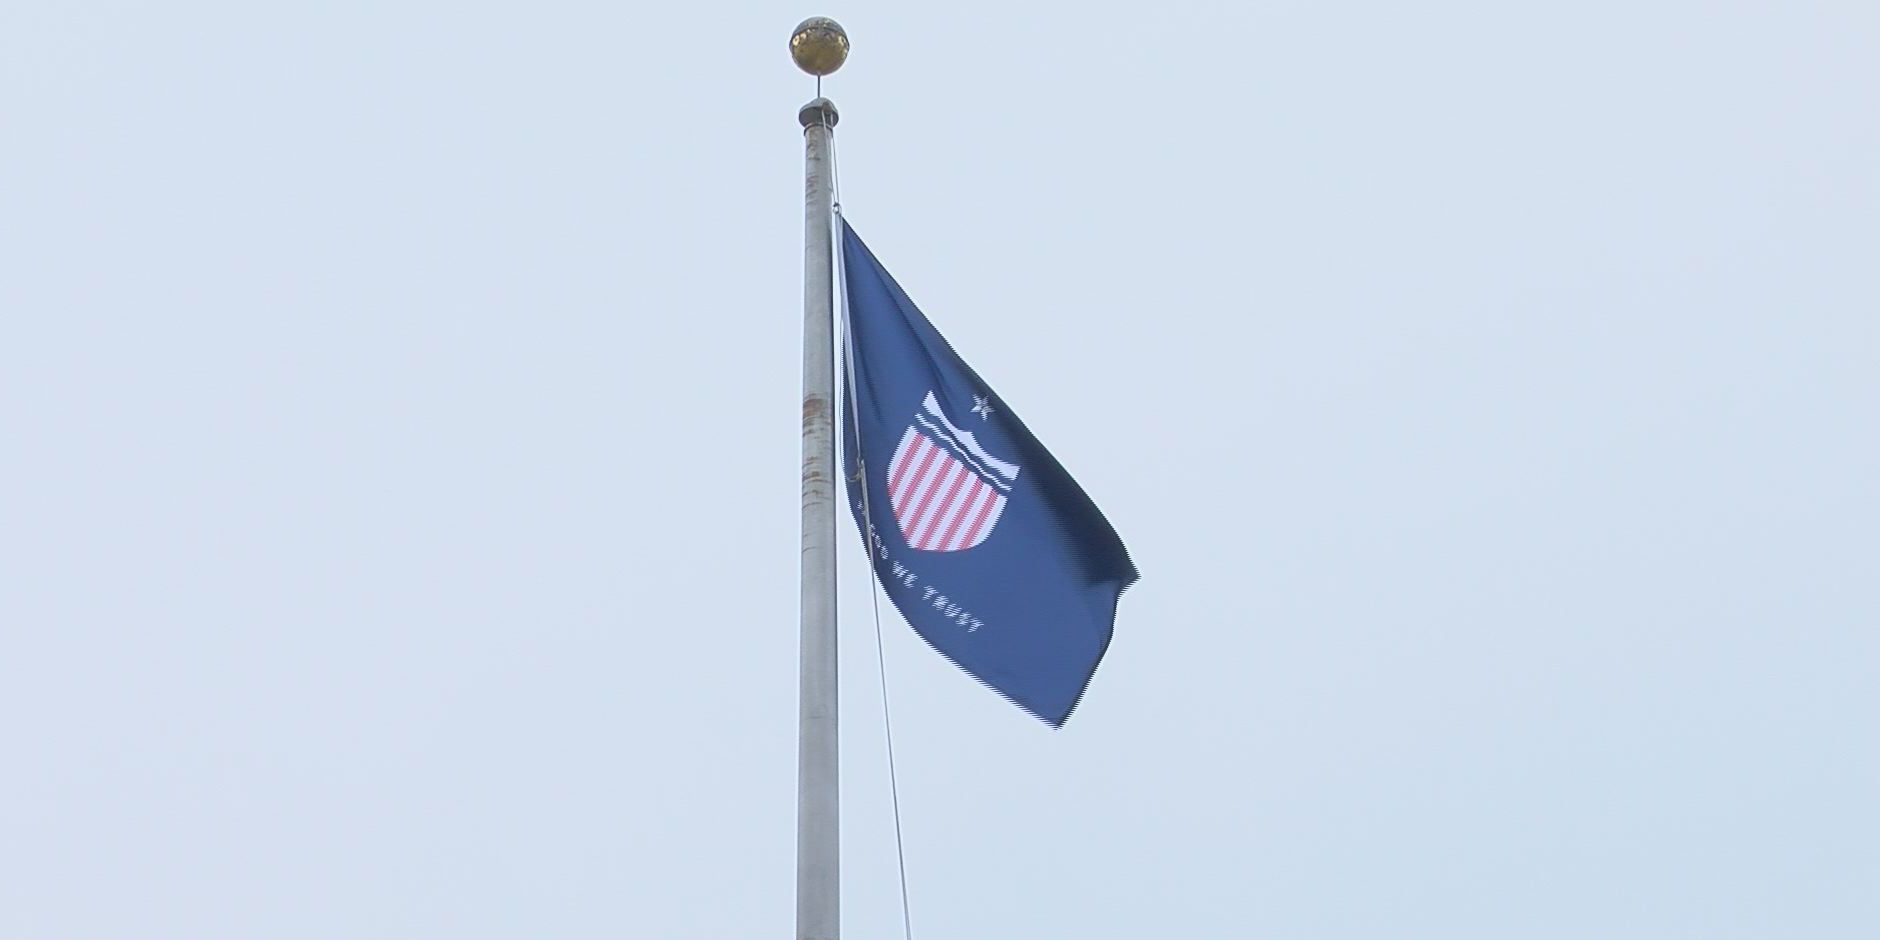 Great River Flag: What's the symbolism?